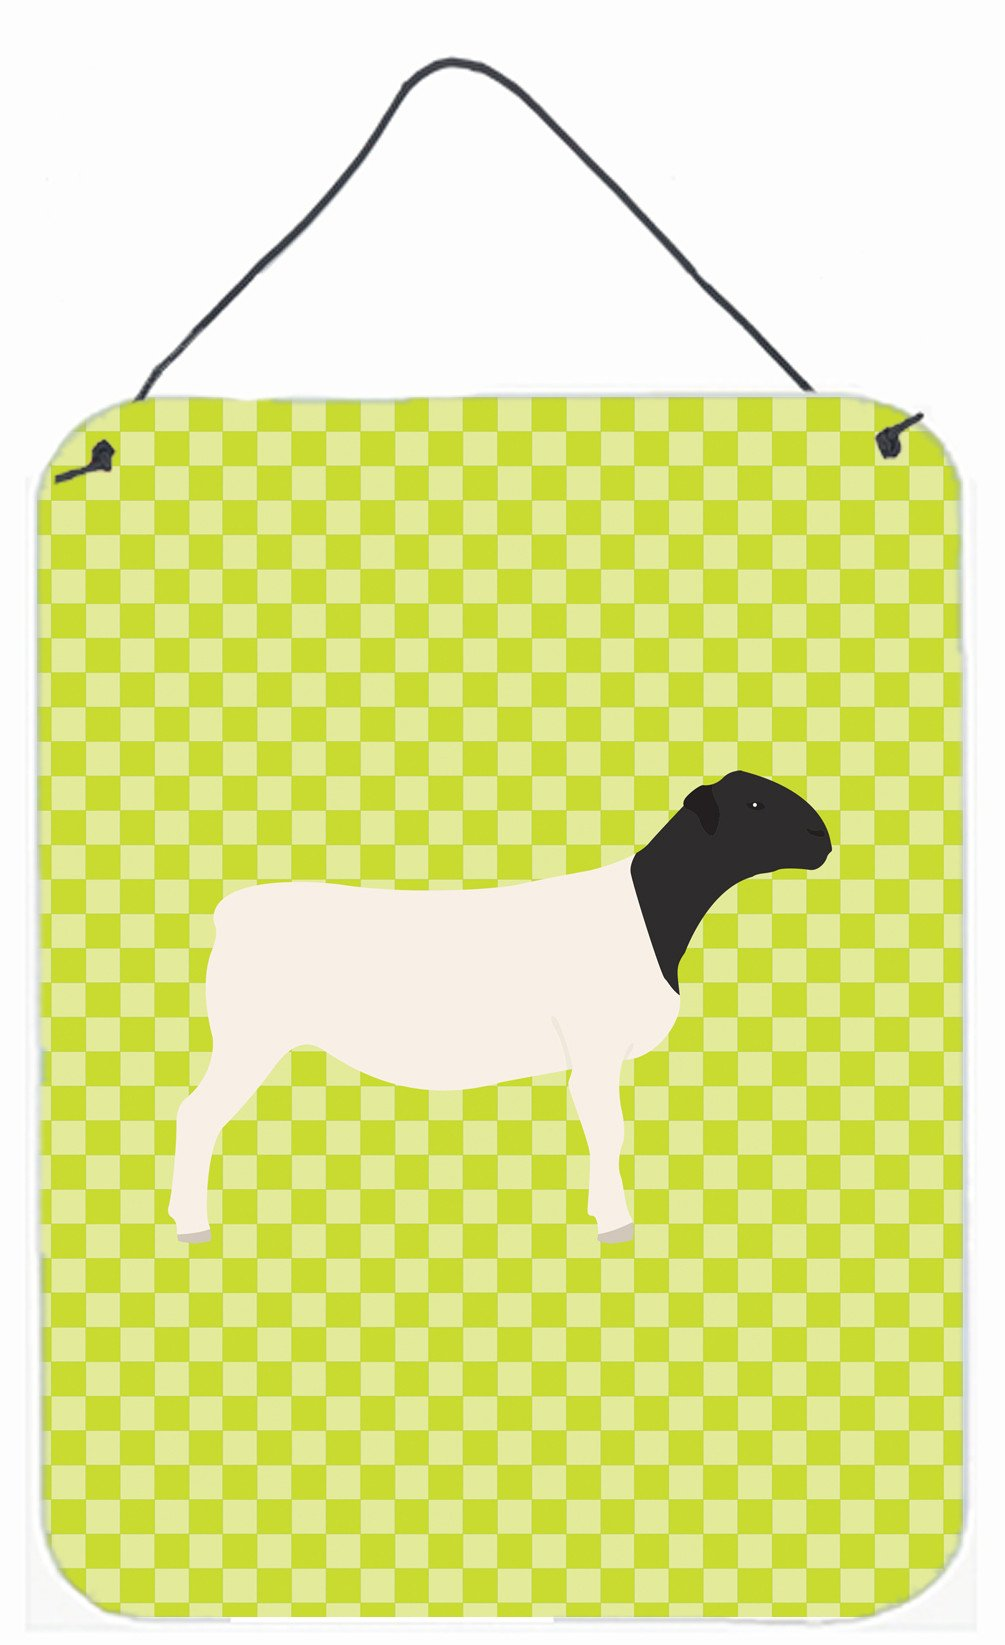 Dorper Sheep Green Wall or Door Hanging Prints BB7804DS1216 by Caroline's Treasures